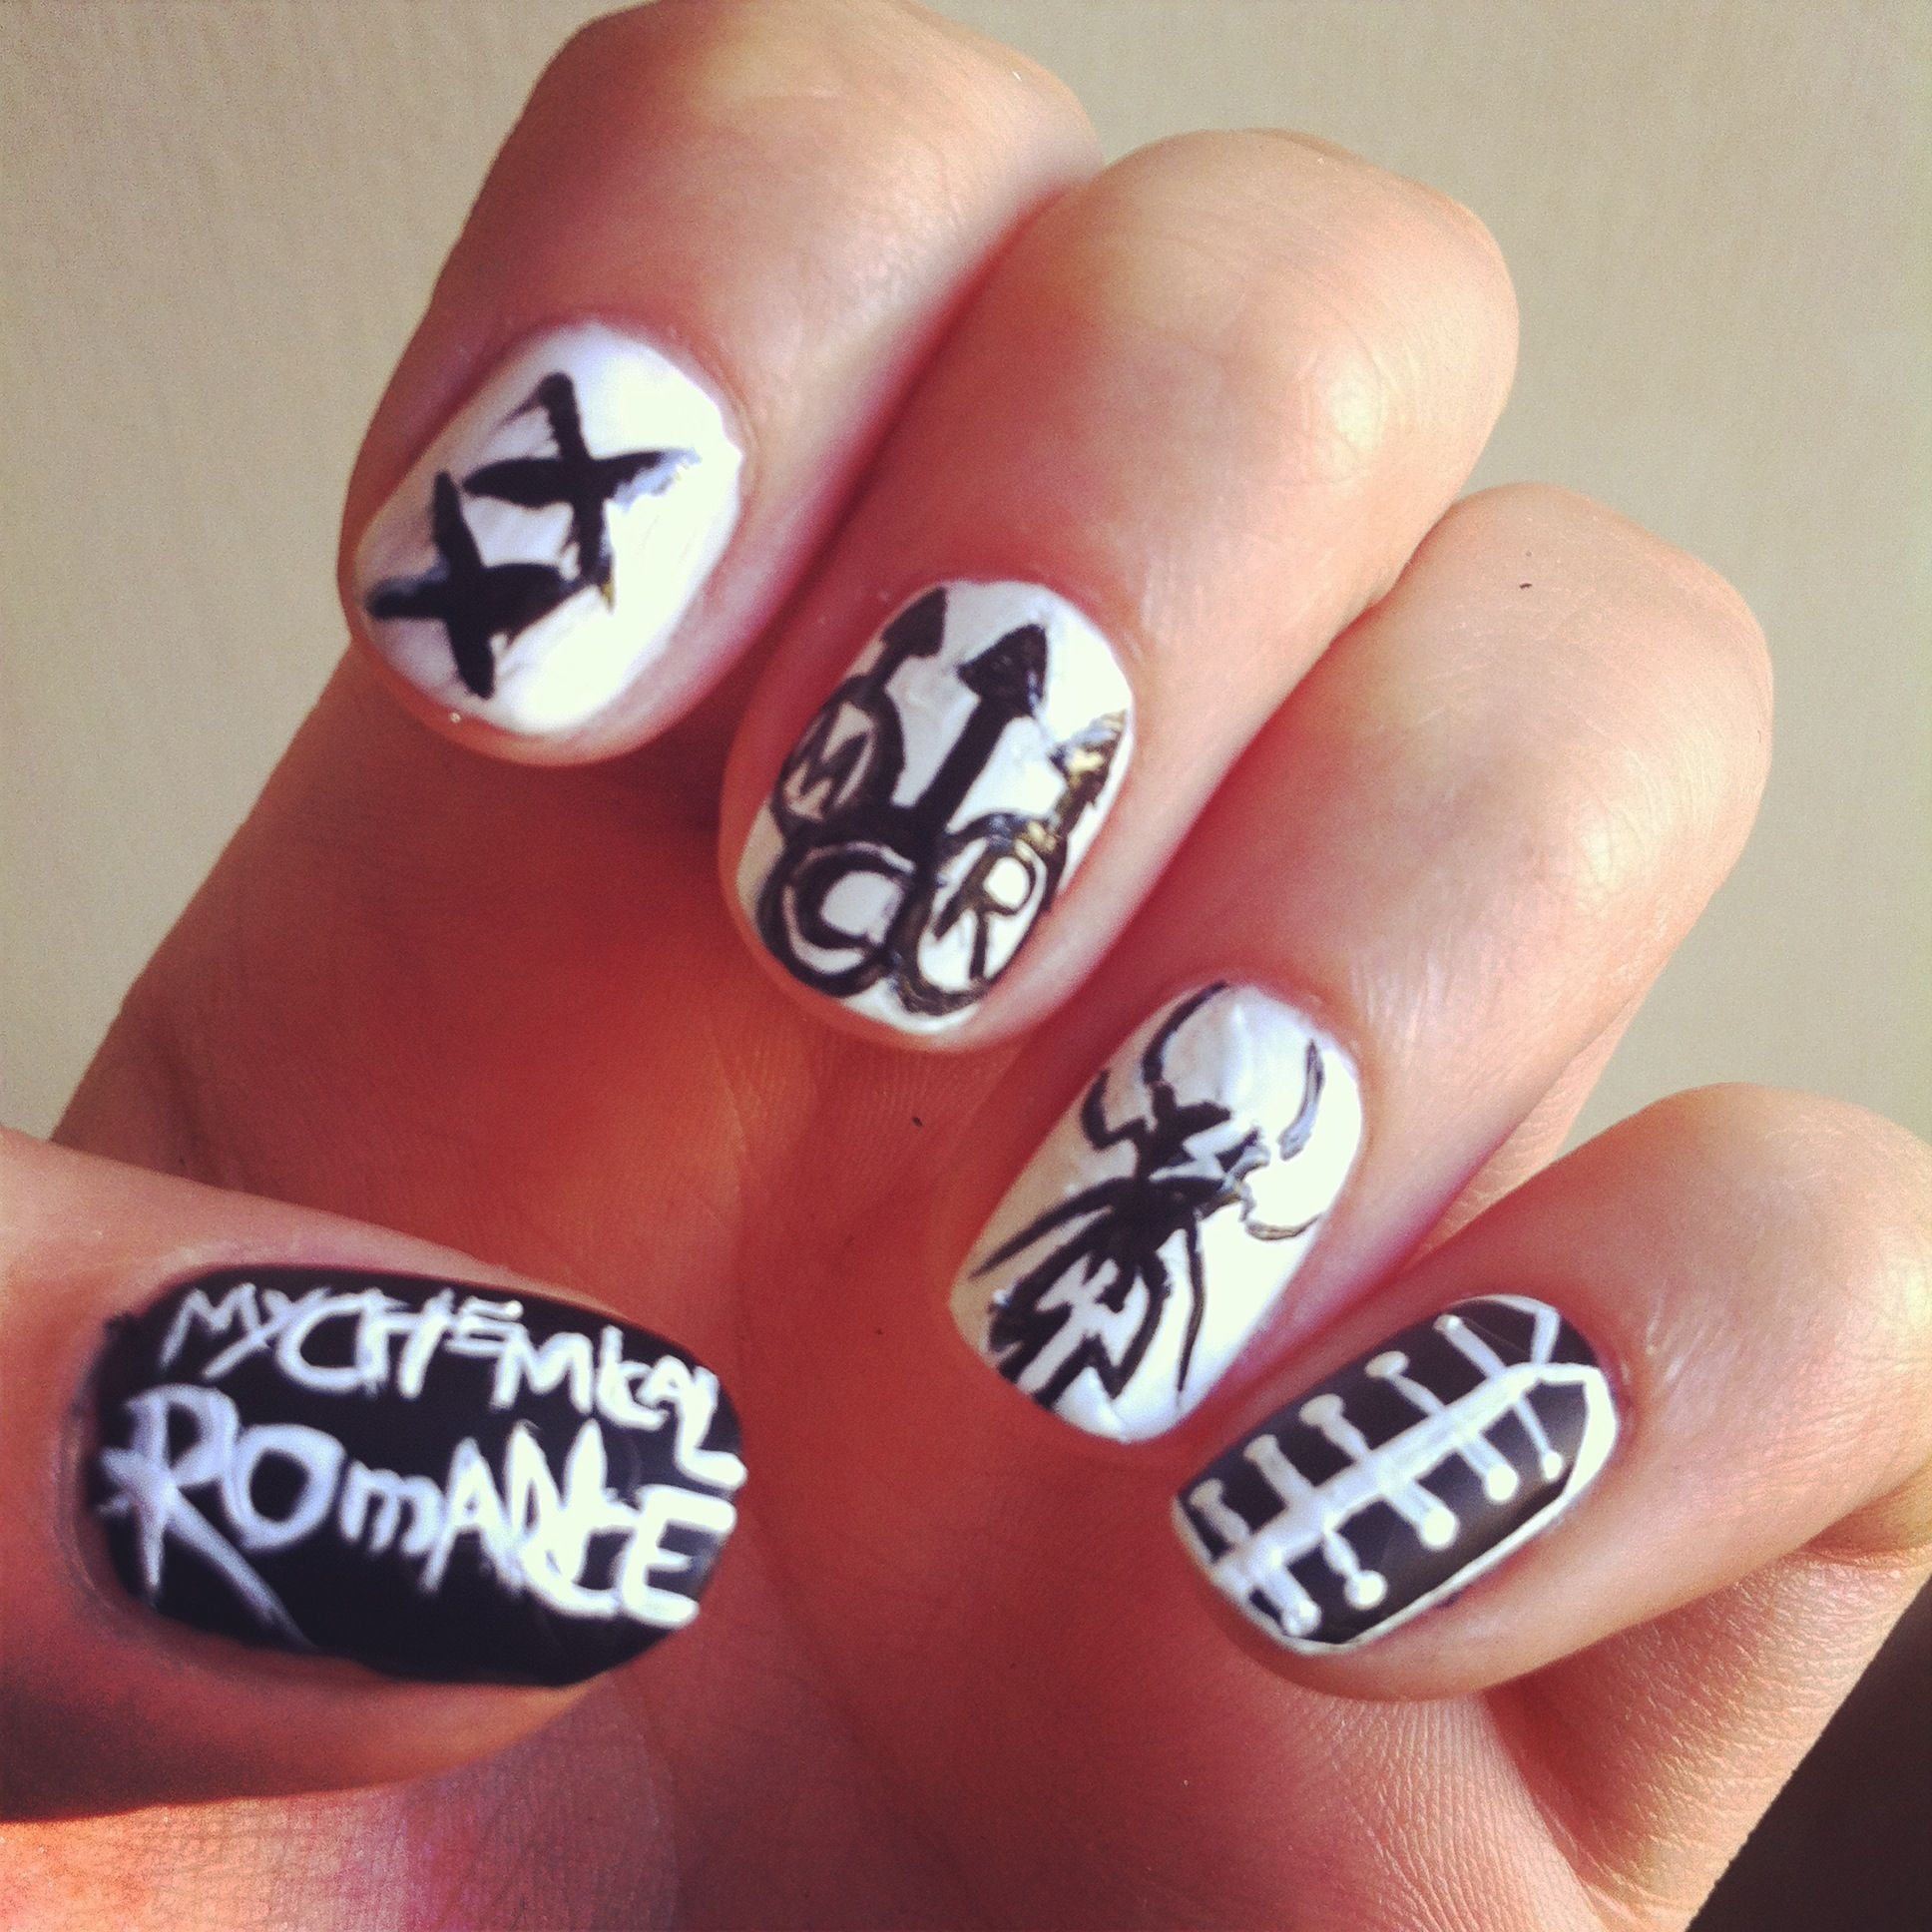 my chemical romance nails , nail art, band nails, MCR, emo